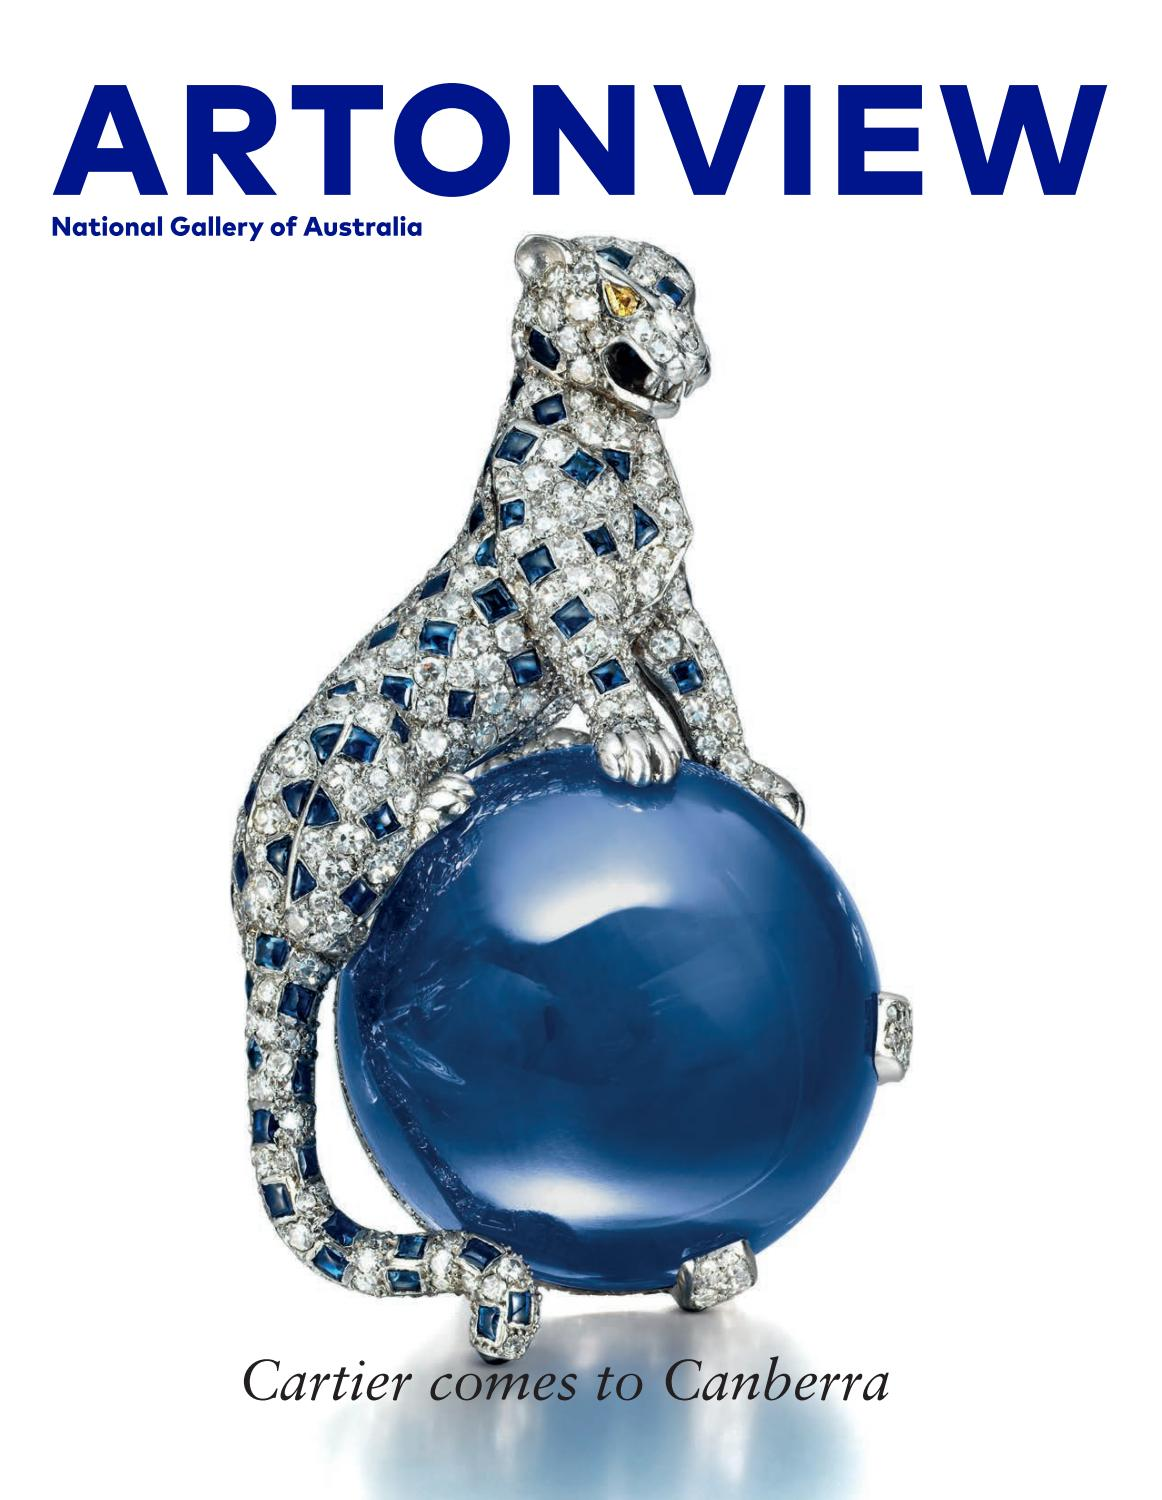 2017 Q4 | Artonview 92 by National Gallery of Australia - issuu